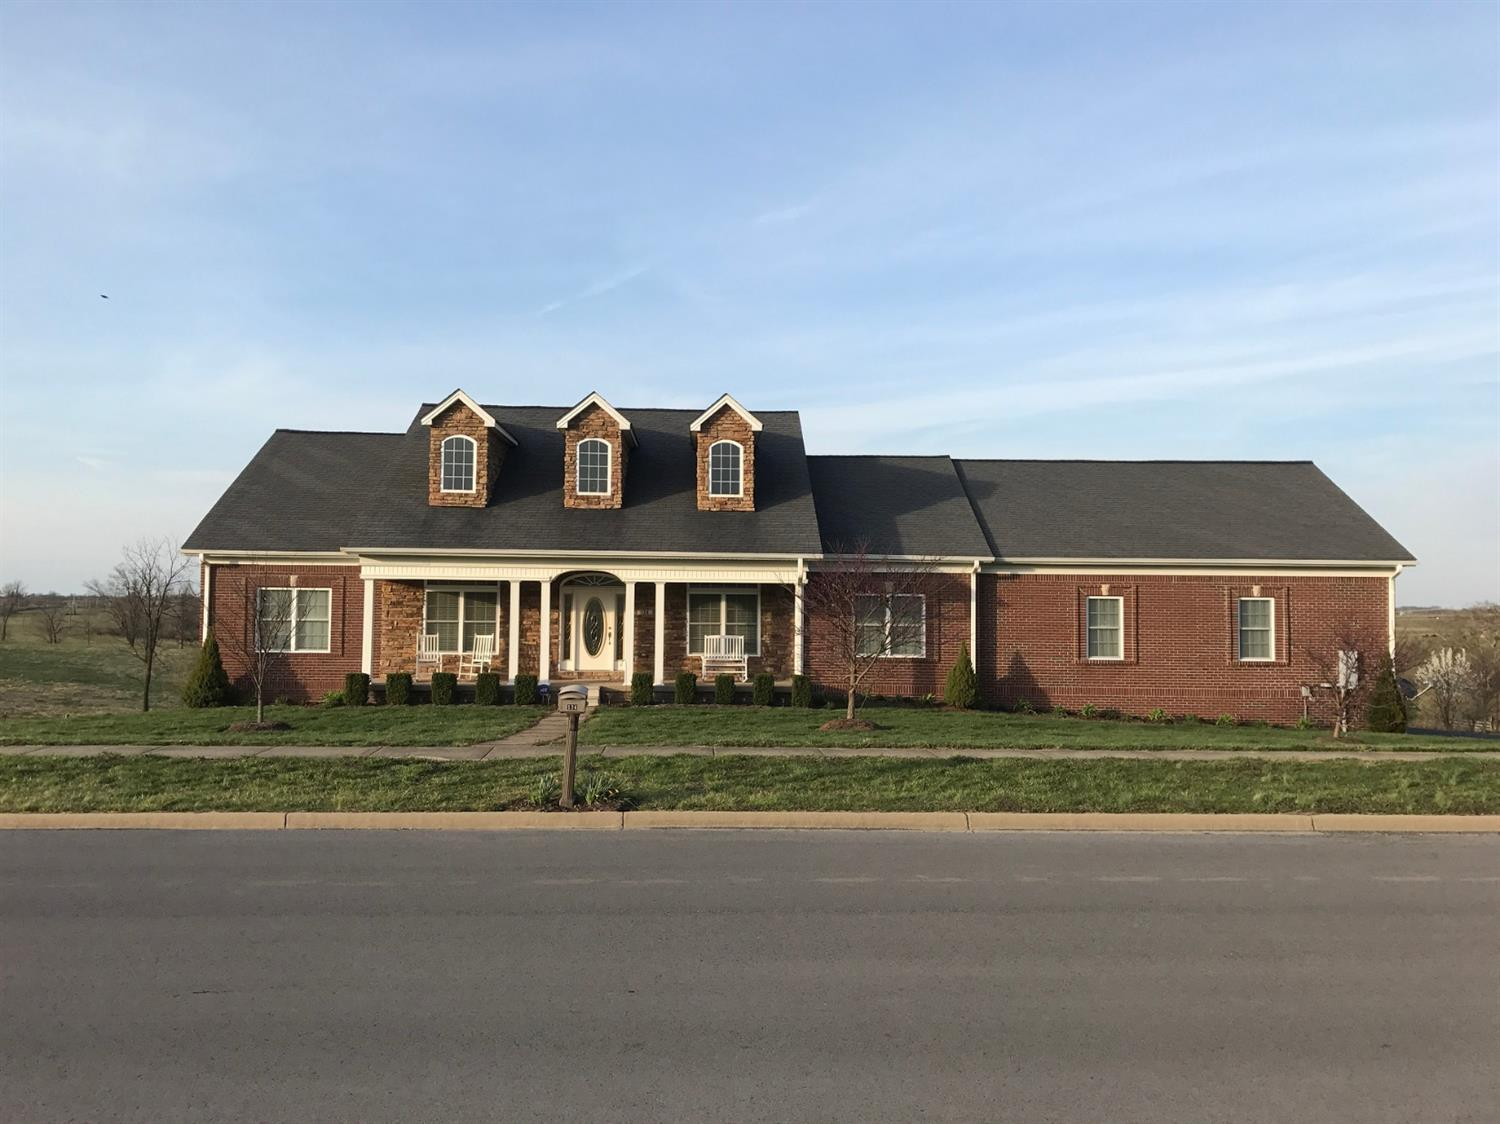 Custom%20brick%20house%20with%20stone%20accents%20on%20dormers%20and%20front%20porch.%20%20Large%20corner%20lot%20with%20little%20traffic.%20%20Built%20in%202007.%20%20Dual%2050-gallon%20water%20heaters.%20%20Street%20side%20of%20roof%20has%20been%20replaced%202%20years%20ago.%20%20Hardwood,%20carpet%20and%20ceramic%20tile%20throughout.%20%20All%20stainless%20kitchen%20appliances%20stay.%20%20KU%20underground%20electric%20with%20city%20water/sewer.%201st%20Floor%20Master%20with%20Master%20Bath%20Suite-%20Whirlpool%20tub,%20custom%20tile%20shower.%202%20additional%20bedrooms%20and%20full%20baths%20on%20the%201st%20floor.%20Kitchen%20with%20separate%20formal%20dining%20room,%20living%20room%20with%20vaulted%20ceilings%20and%20gas%20fireplace%20with%20mantel,%20study%20could%20be%20converted%20to%20a%204th%20bedroom%20on%20the%201st%20floor.%20%20Covered%20deck%20with%20upgraded%20vinyl%20railing,%20pea%20gravel%20stone%20flooring,%20pre-wired%20for%20220%20hot%20tub.%20%20Fantastic%20view%20of%20large%20farm%20with%20stacked%20rock%20fences.%20%20Large%203+%20car%20garage%20with%2012'%20tall%20insulated%20doors.%20Data%20believed%20correct%20but%20not%20guaranteed.%20Buyer%20to%20verify%20data%20prior%20to%20offer.%20Agents%20read%20Agent%20Remarks.